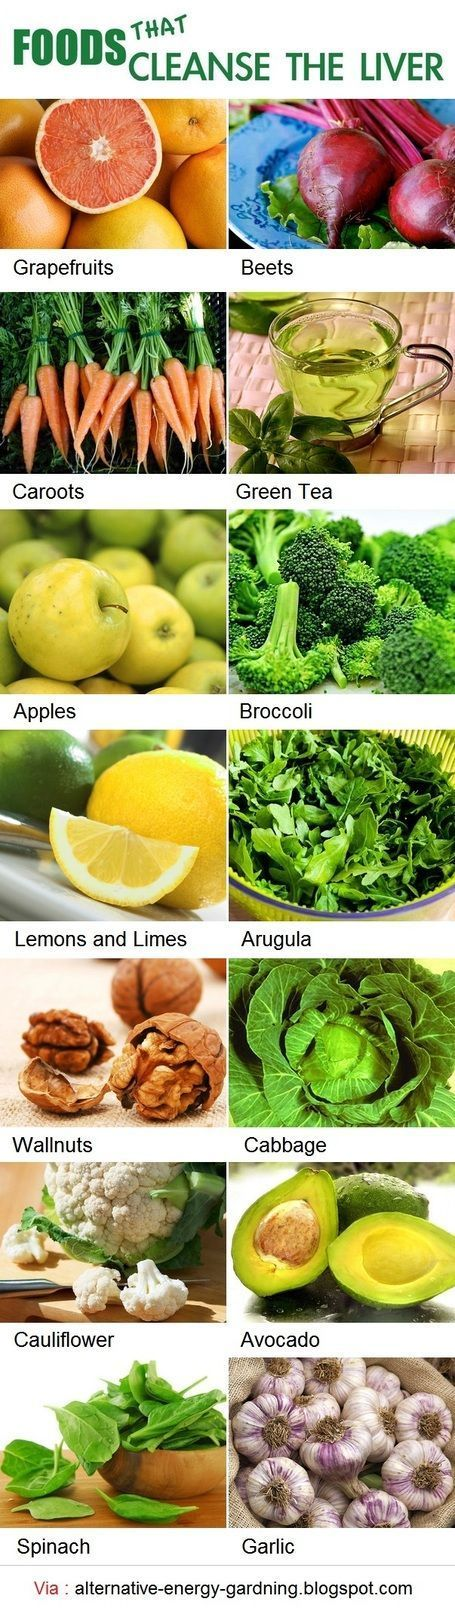 liver cleanse diet alcohol